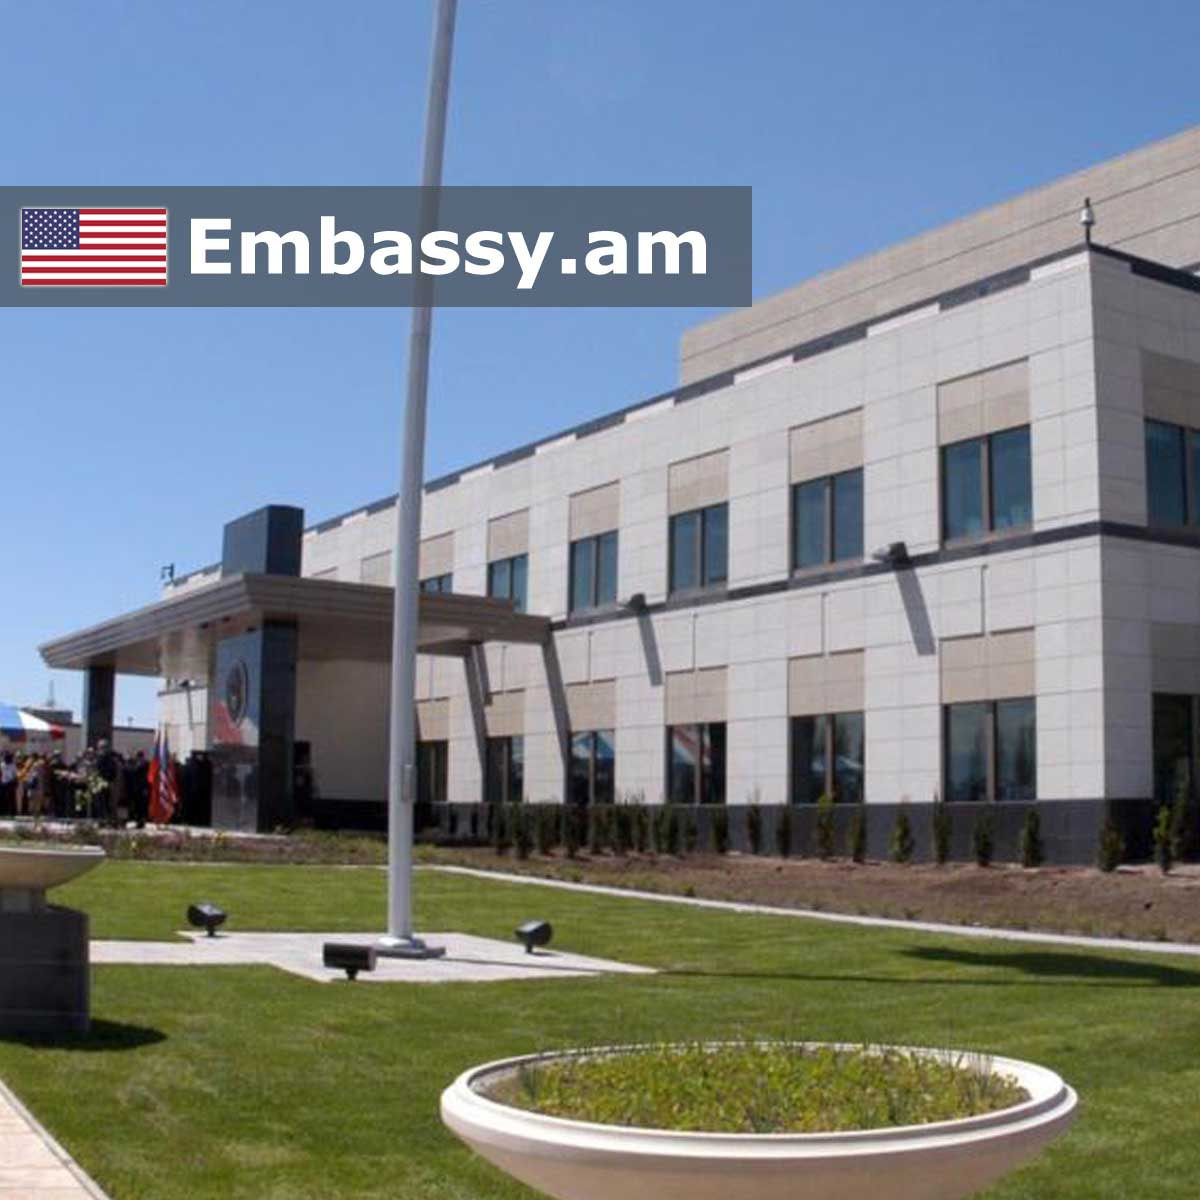 Embassy of the USA in Armenia: www.embassy.am